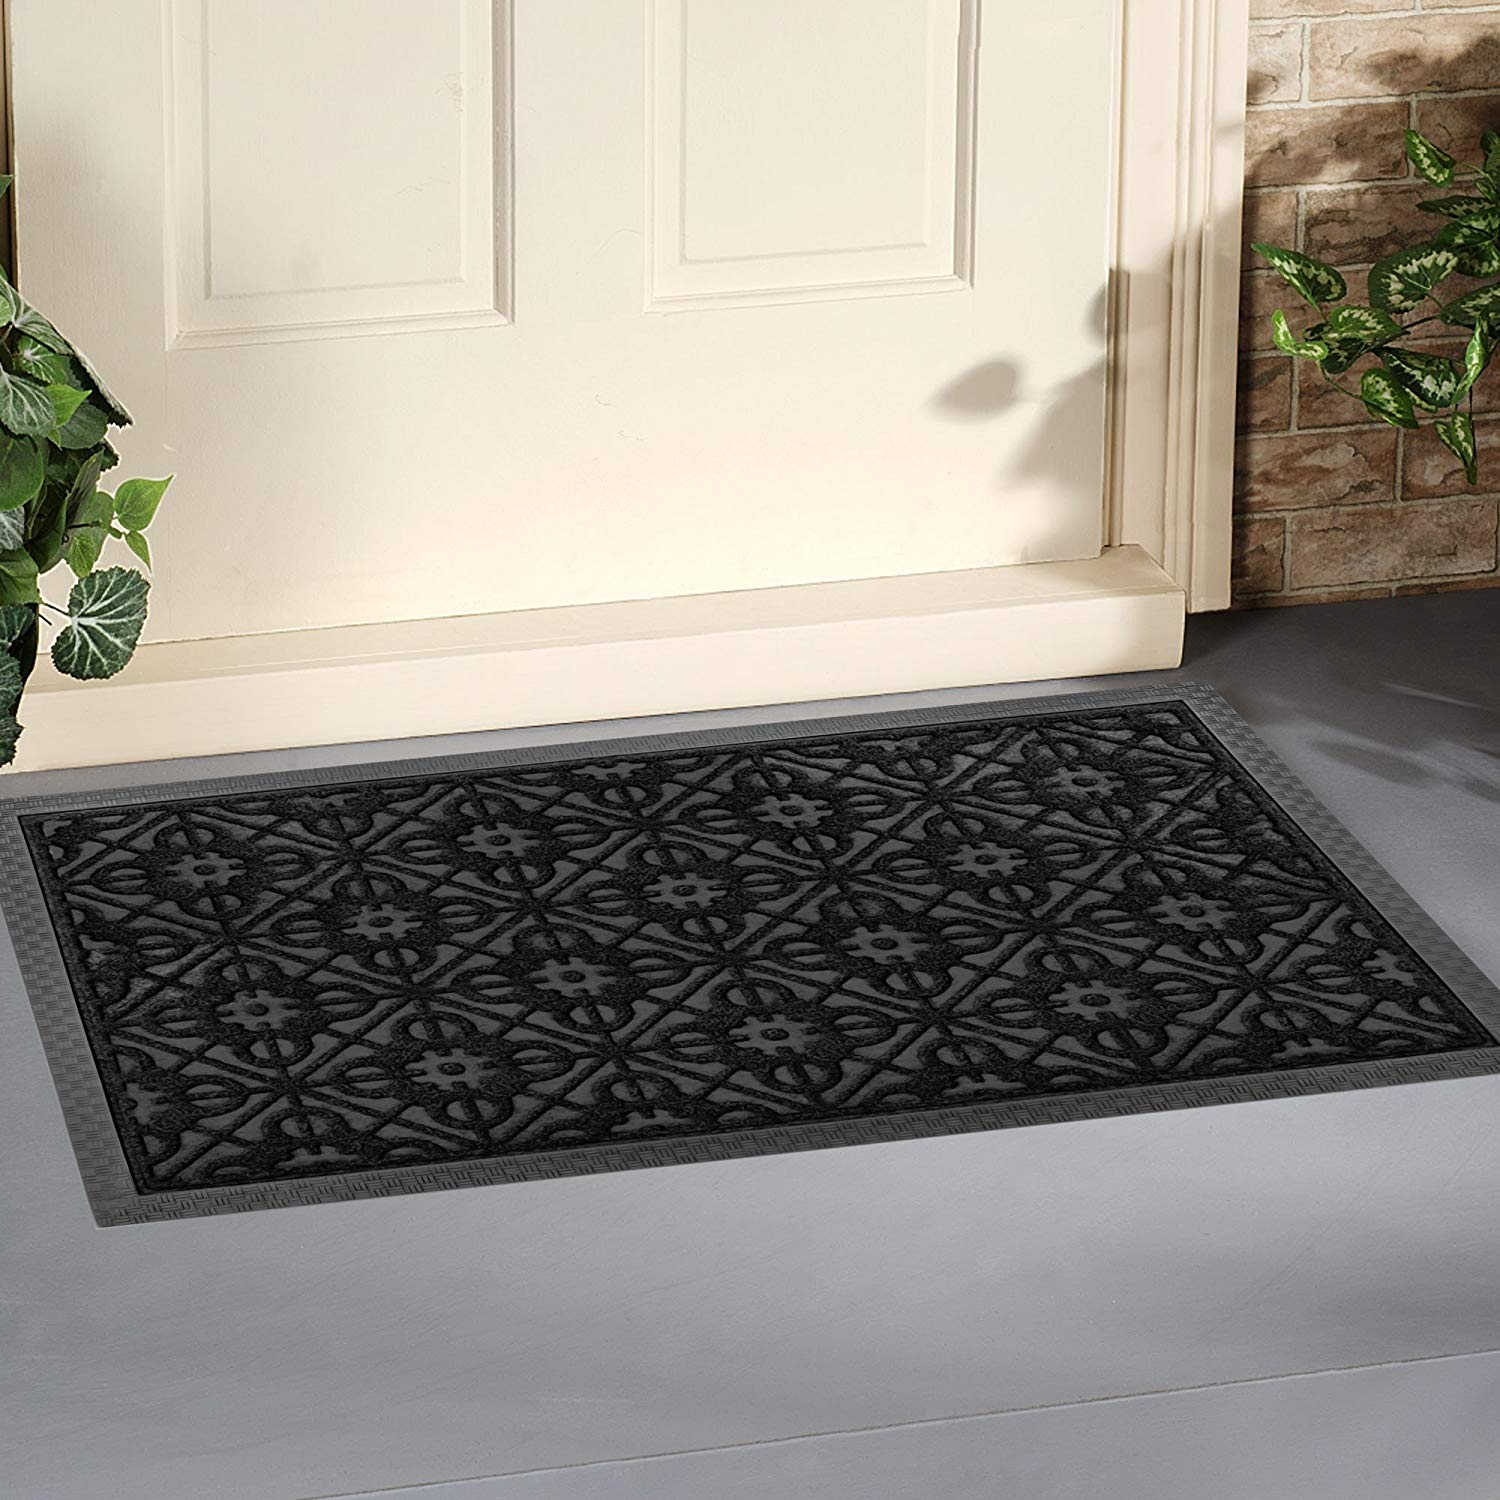 First-Time House Owner Gifts Front Door Mat